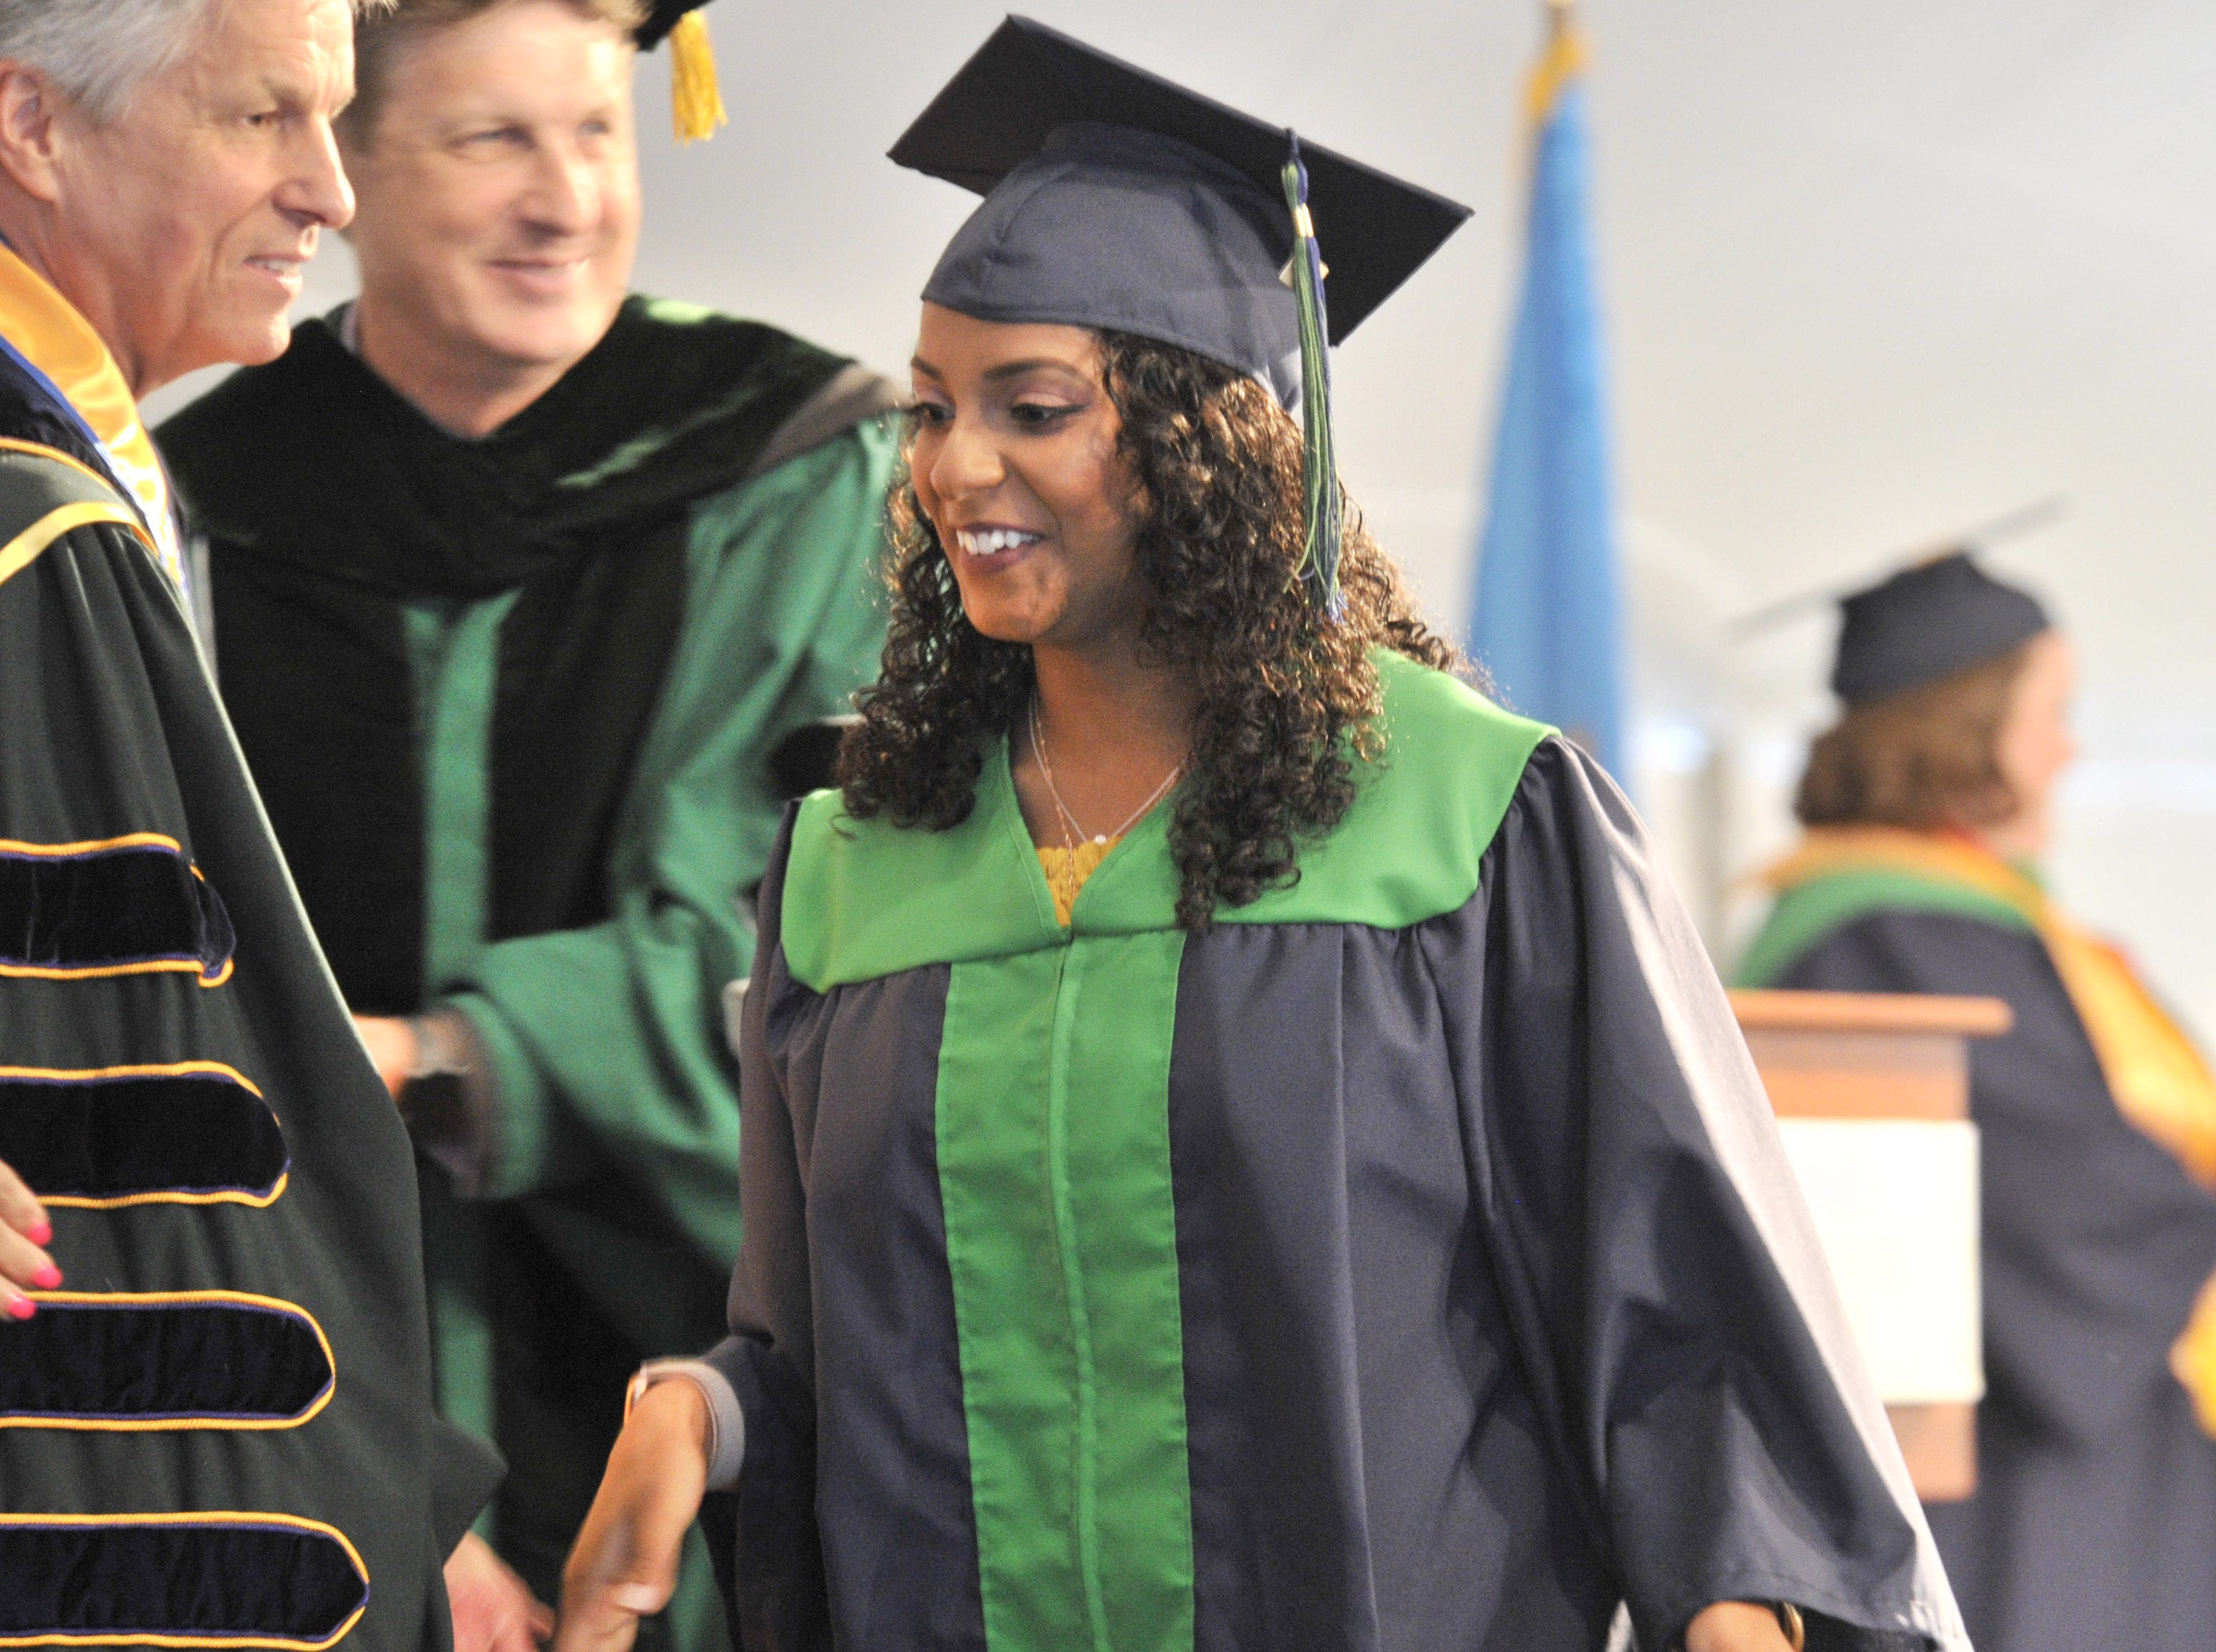 DelTech Terry Campus seniors receiving their degrees during commencement Monday night.